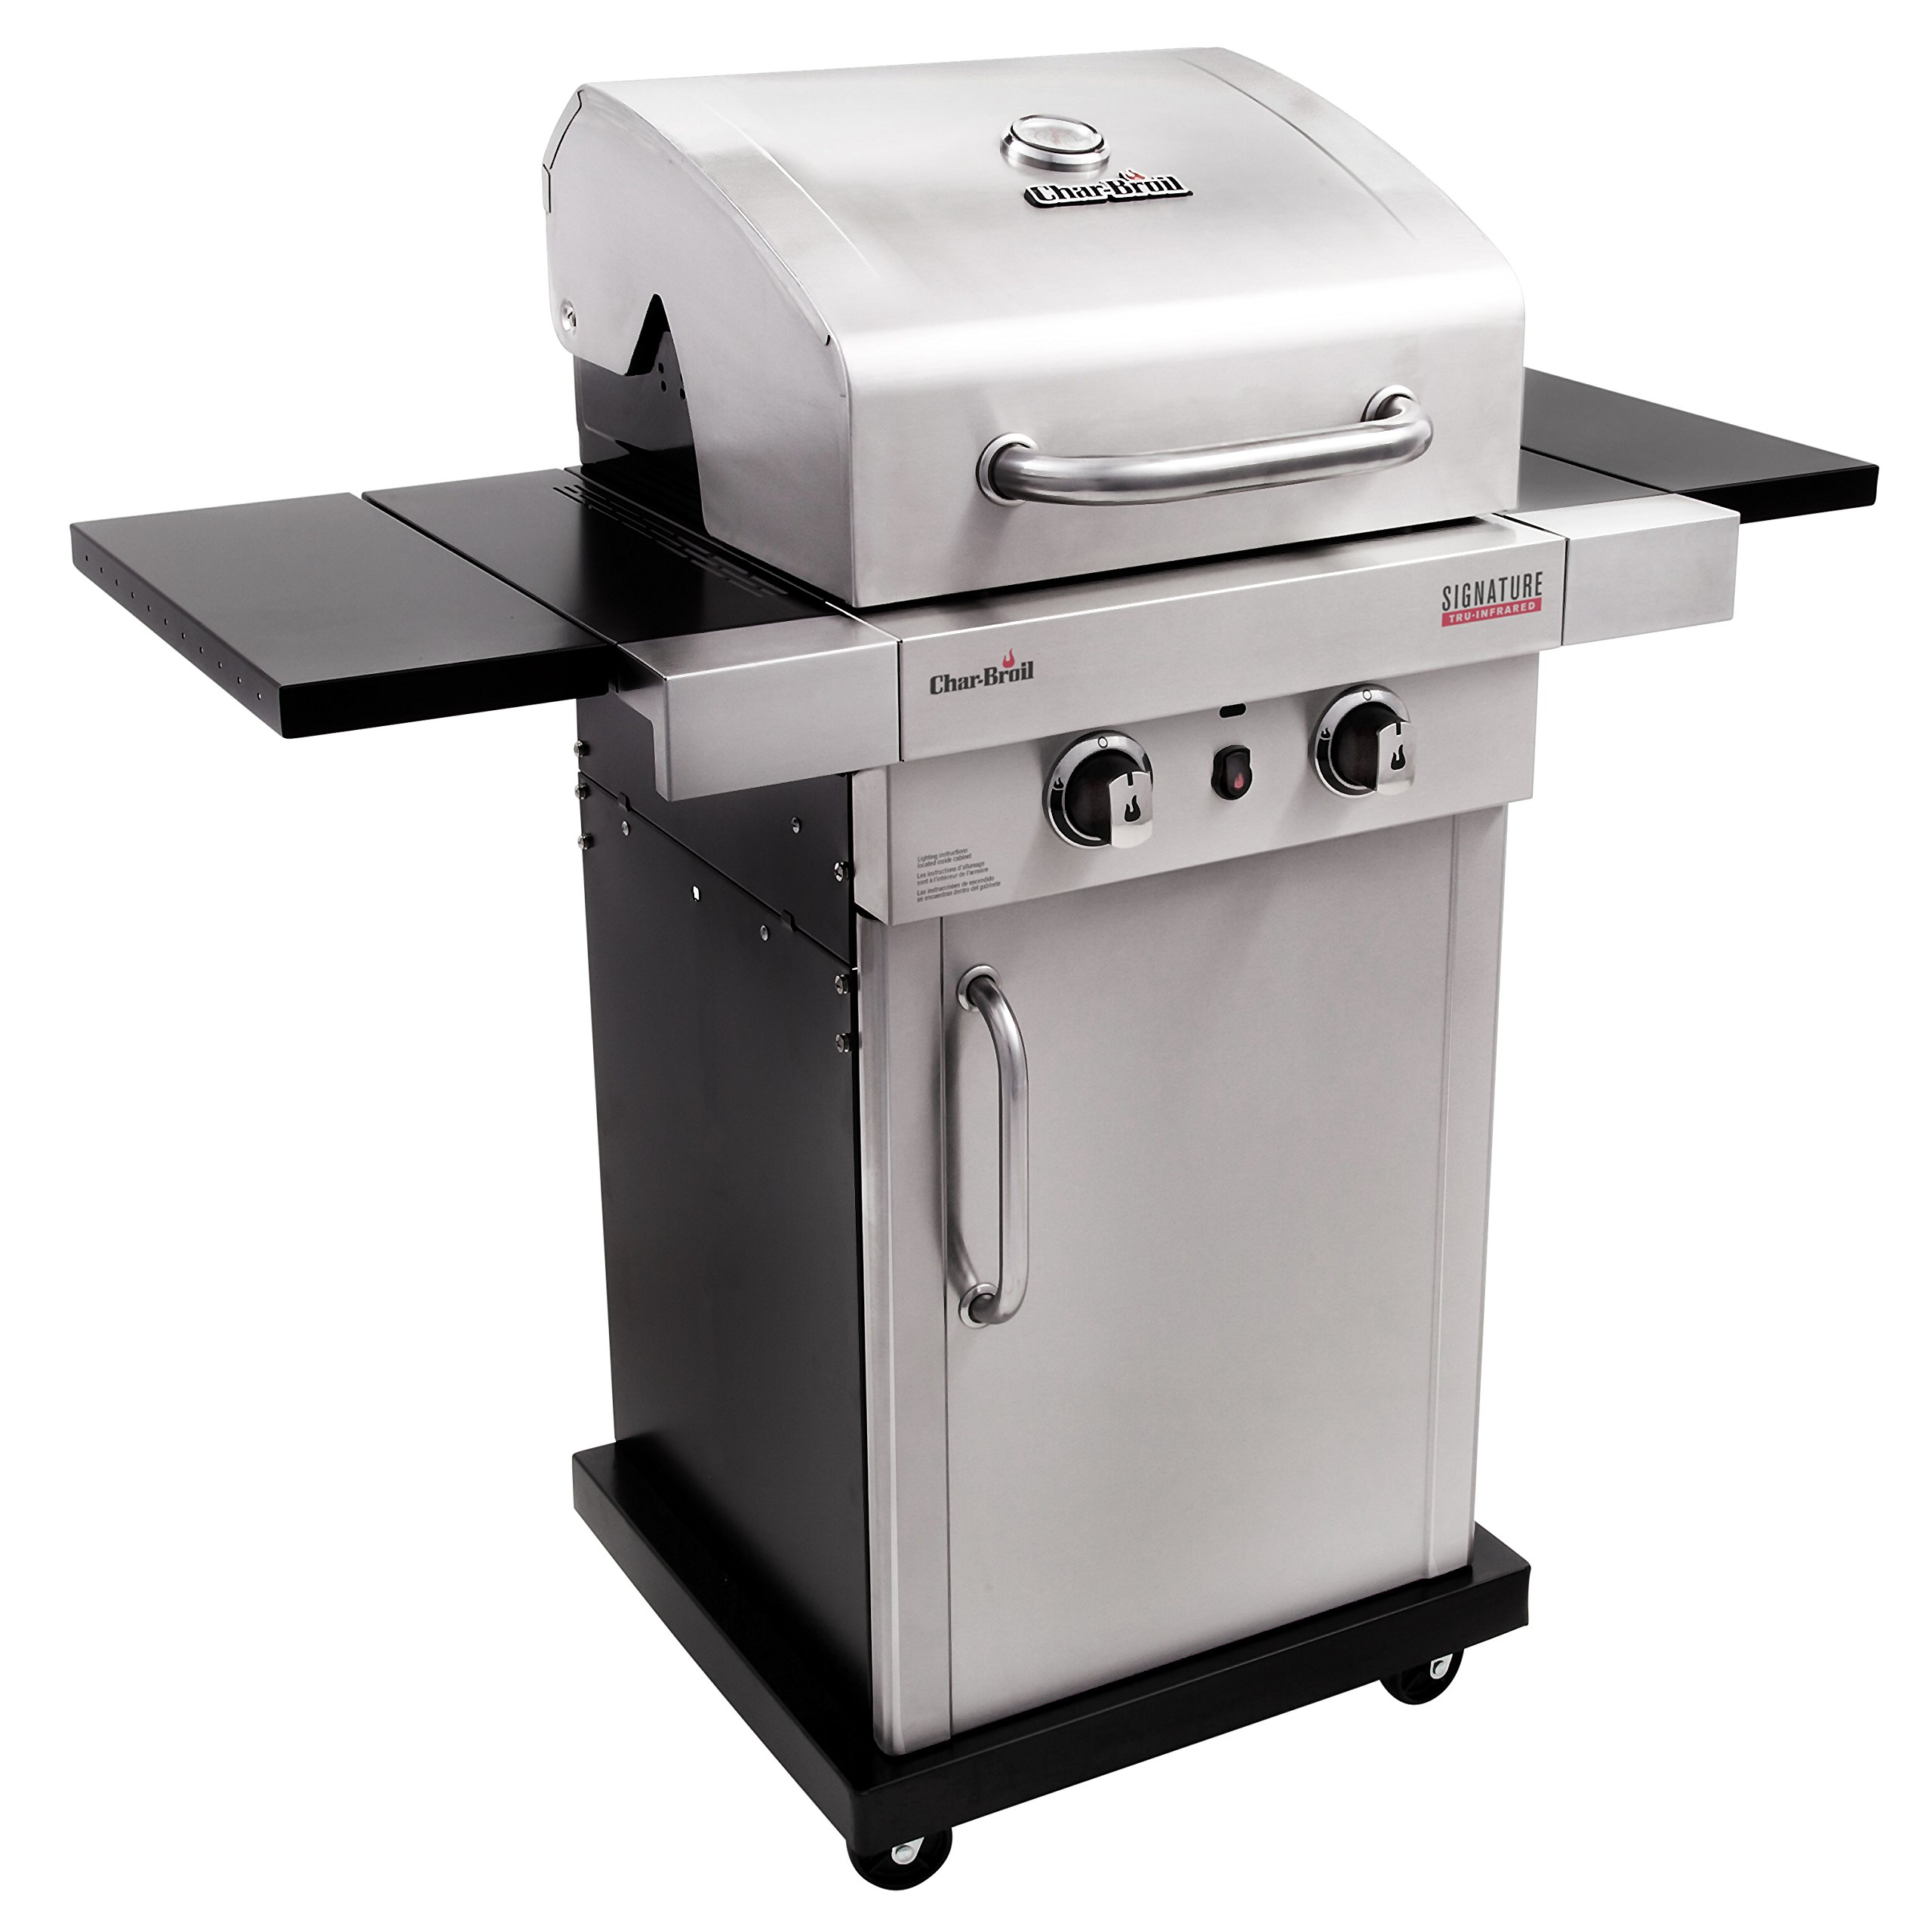 Char-Broil Signature TRU-Infrared 325 2-Burner Cabinet Liquid Propane Gas Grill by Char-Broil